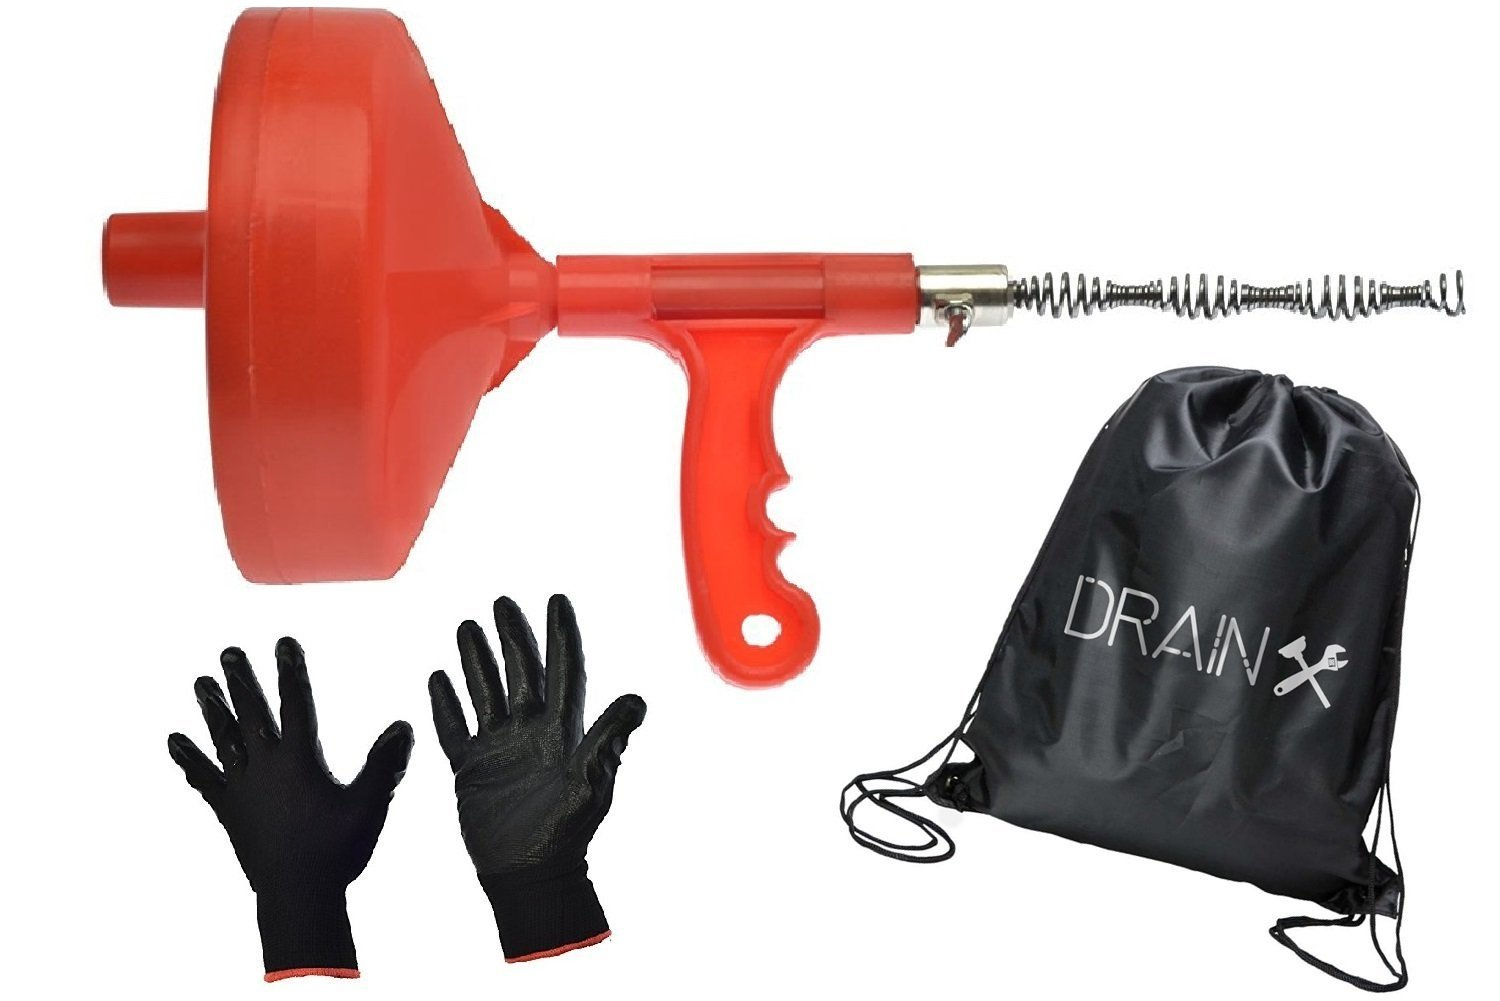 Plumbing Snake Drain Auger   25-Ft Drain Snake Cable with Work Gloves and Storage Bag